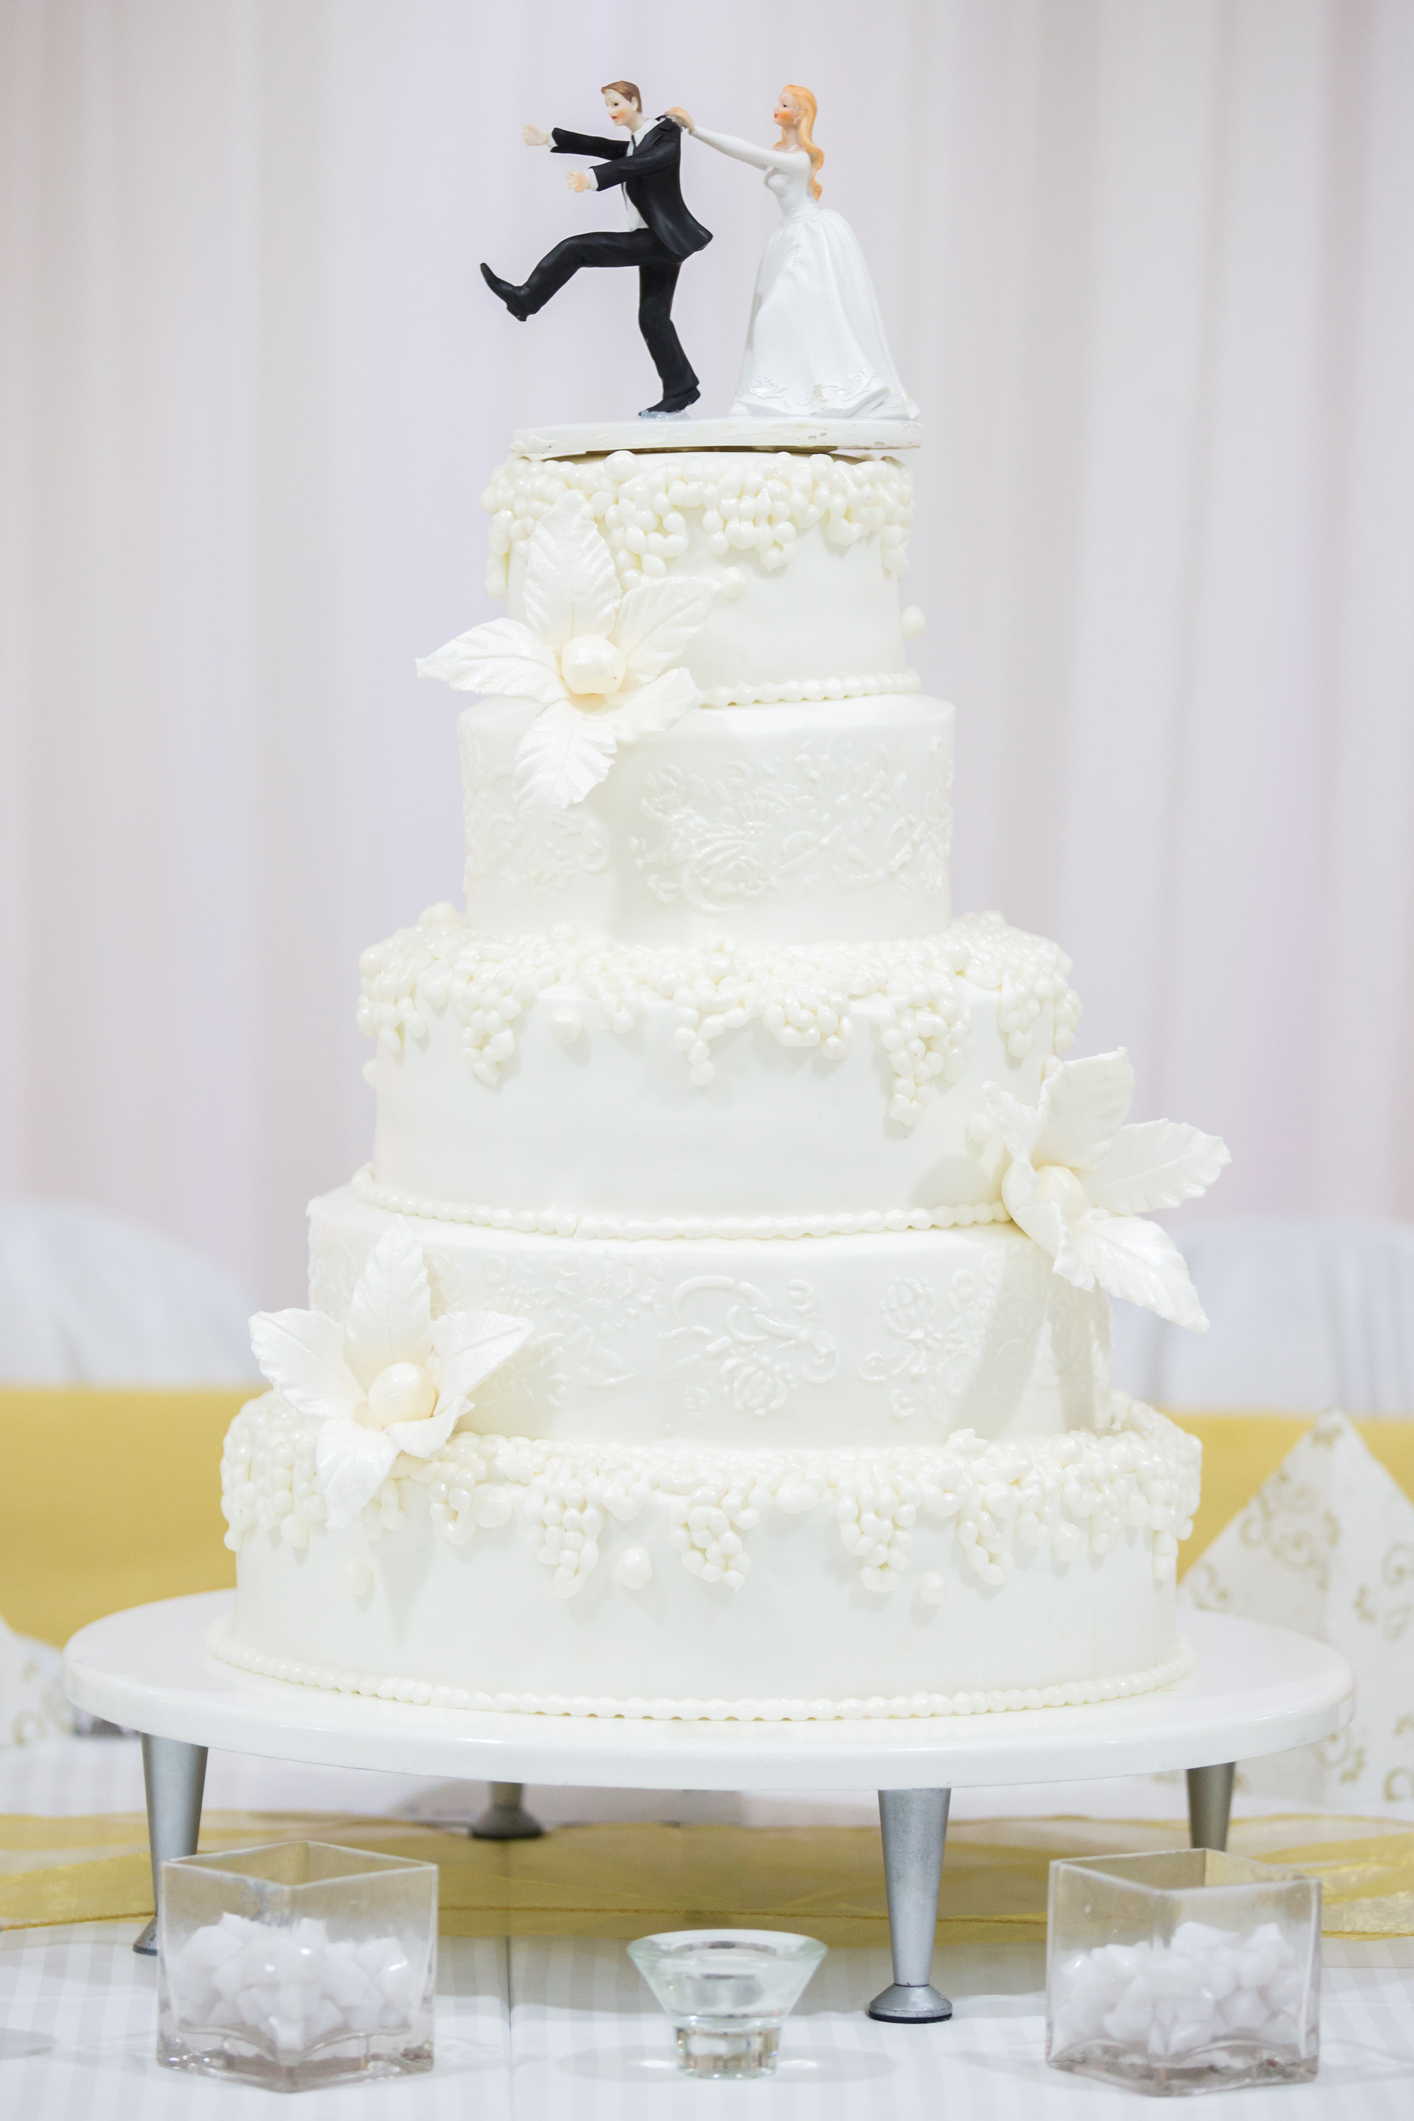 From icing techniques to towering tiers: A look at how wedding cakes ...